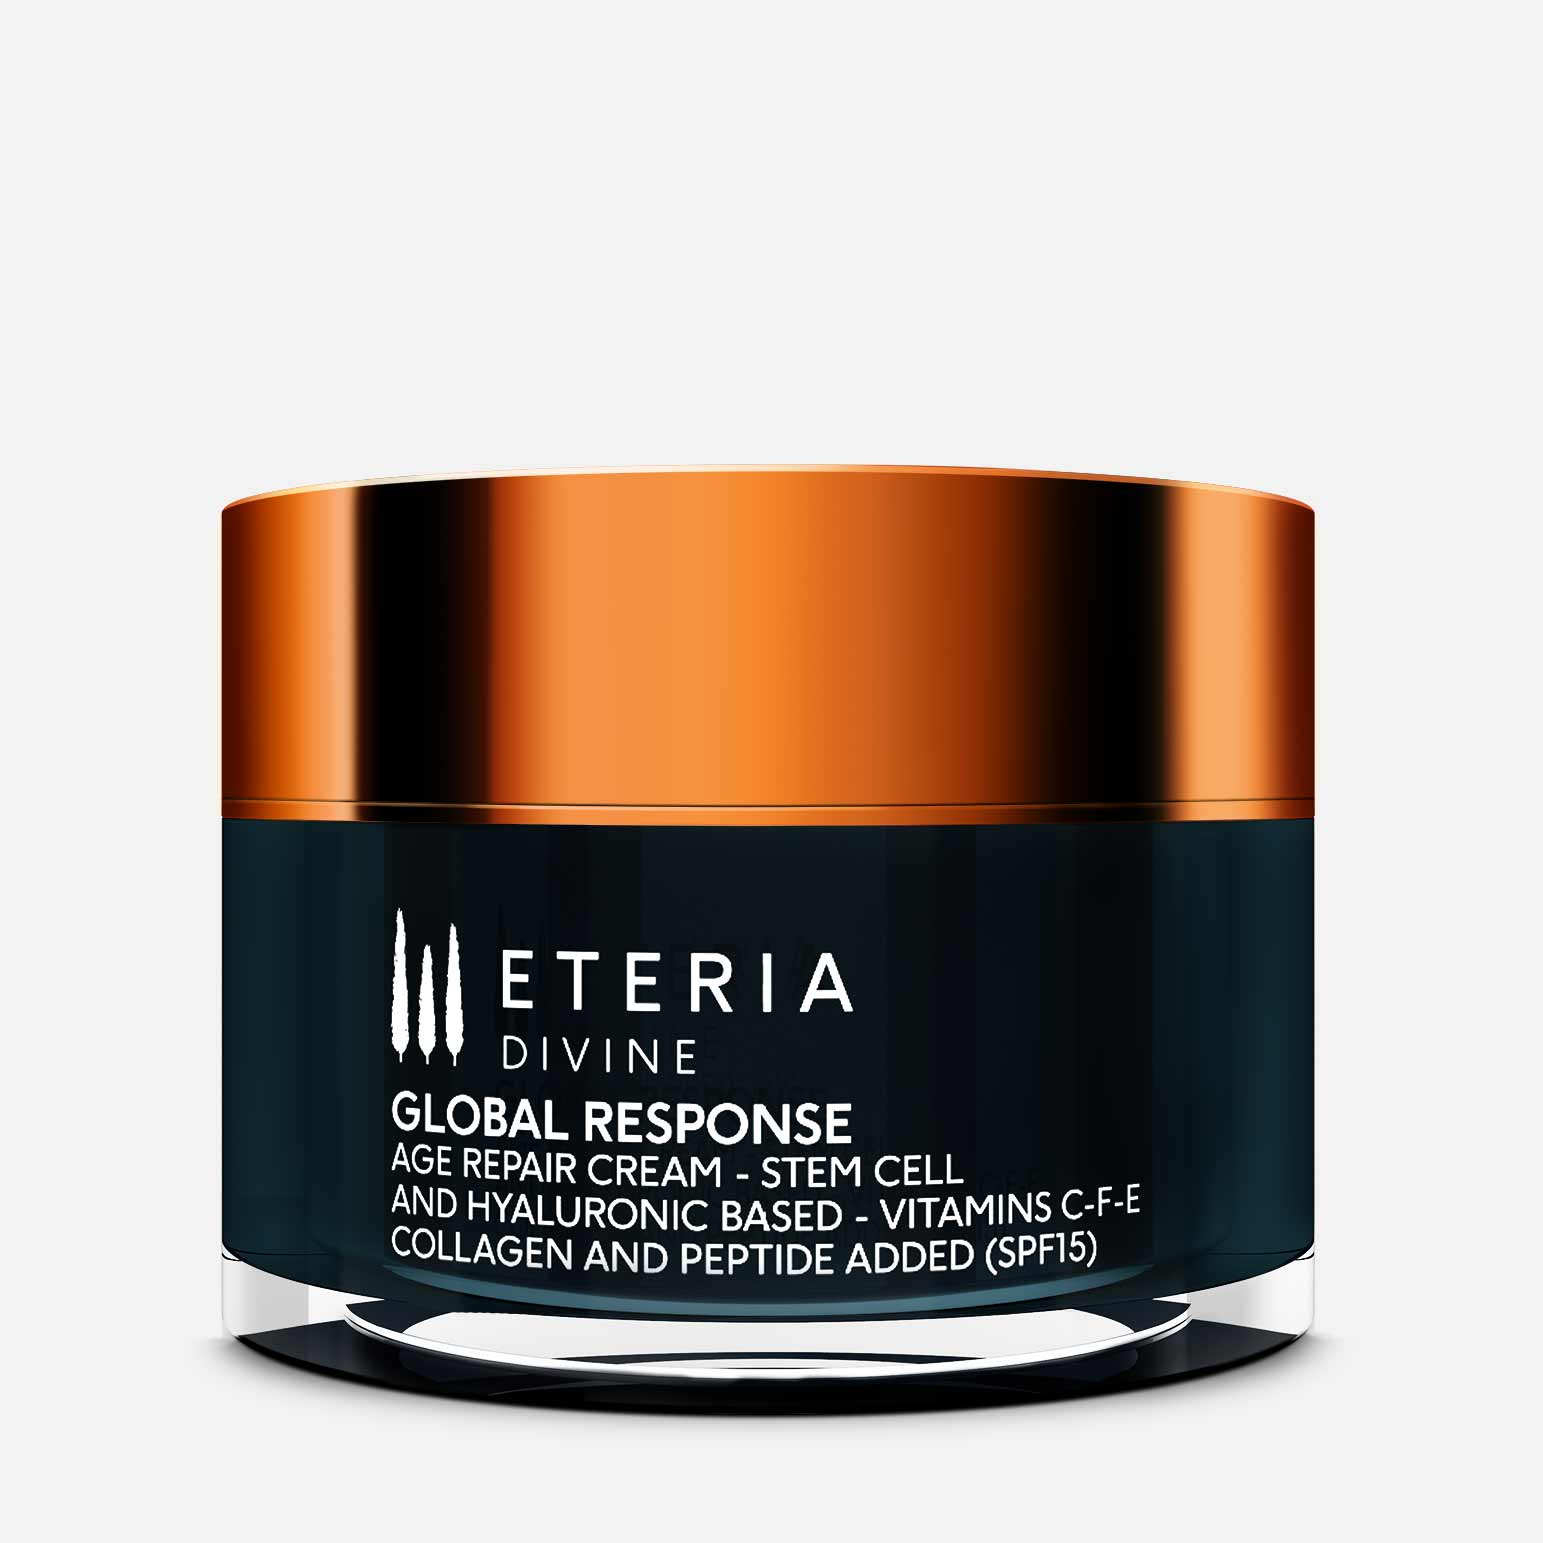 Top anti-aging luxury beauty treatments, such as the stem cell therapy cream by Eteria, fight off signs of aging with plant based ingredients